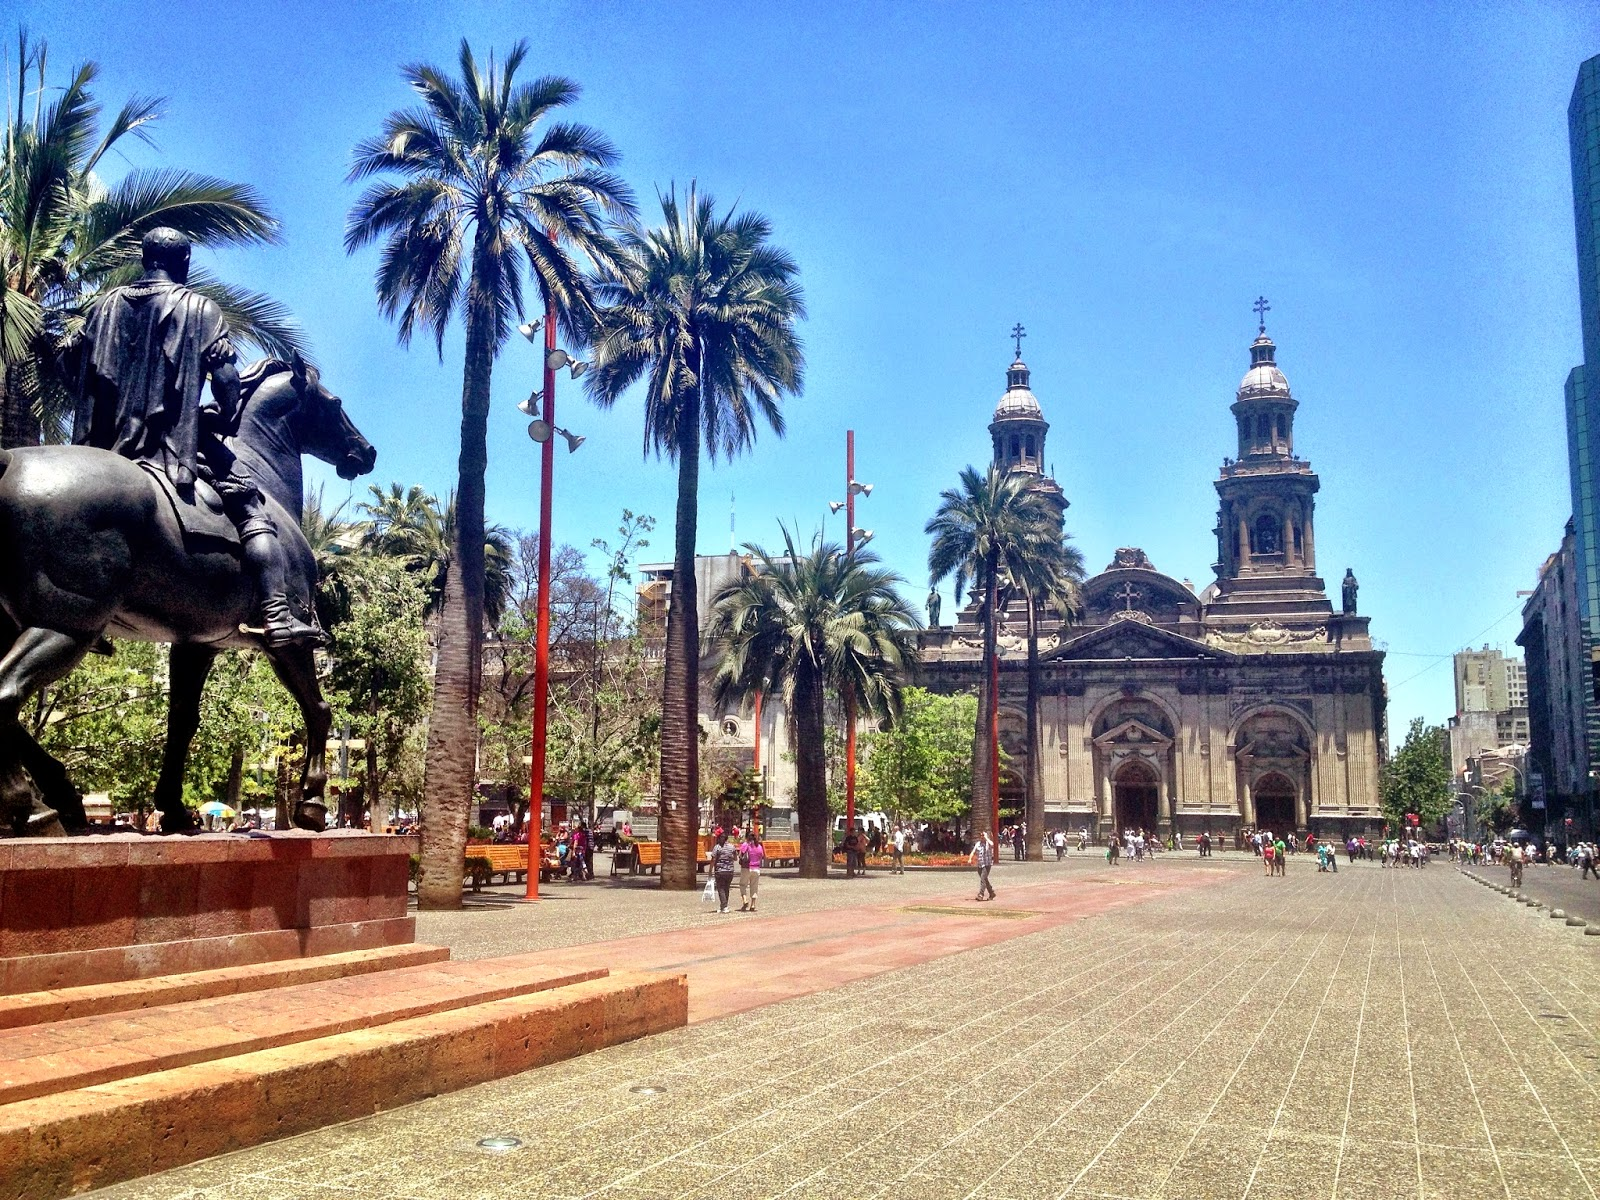 Plaza de Armas, looking towards Catedral de Santiago